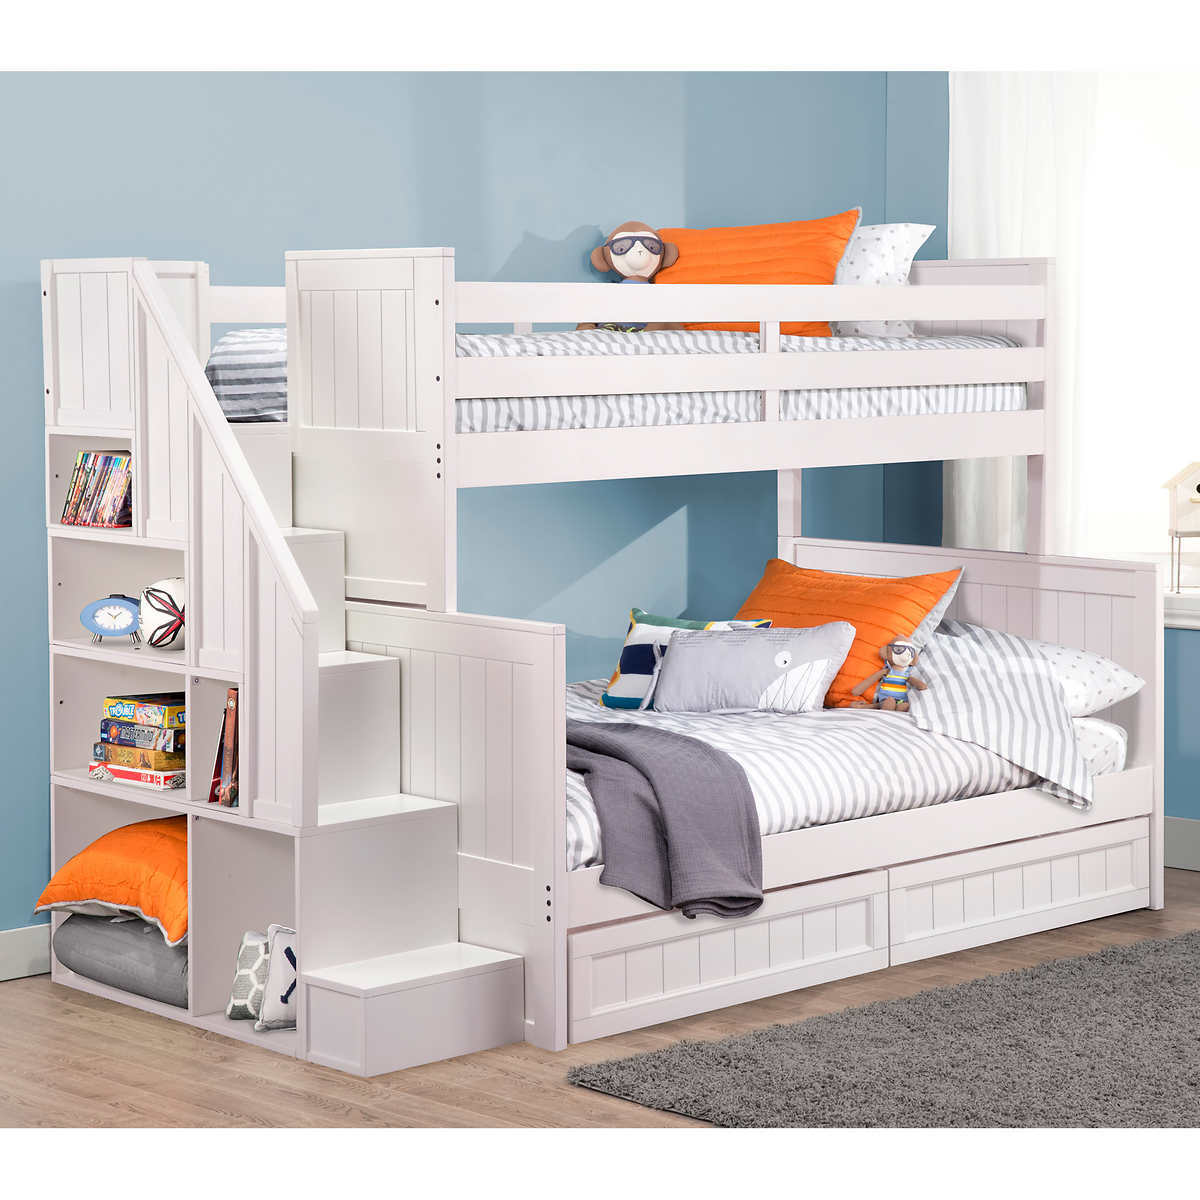 Double Bunk Beds With Stairs Canada Photos Freezer And Stair